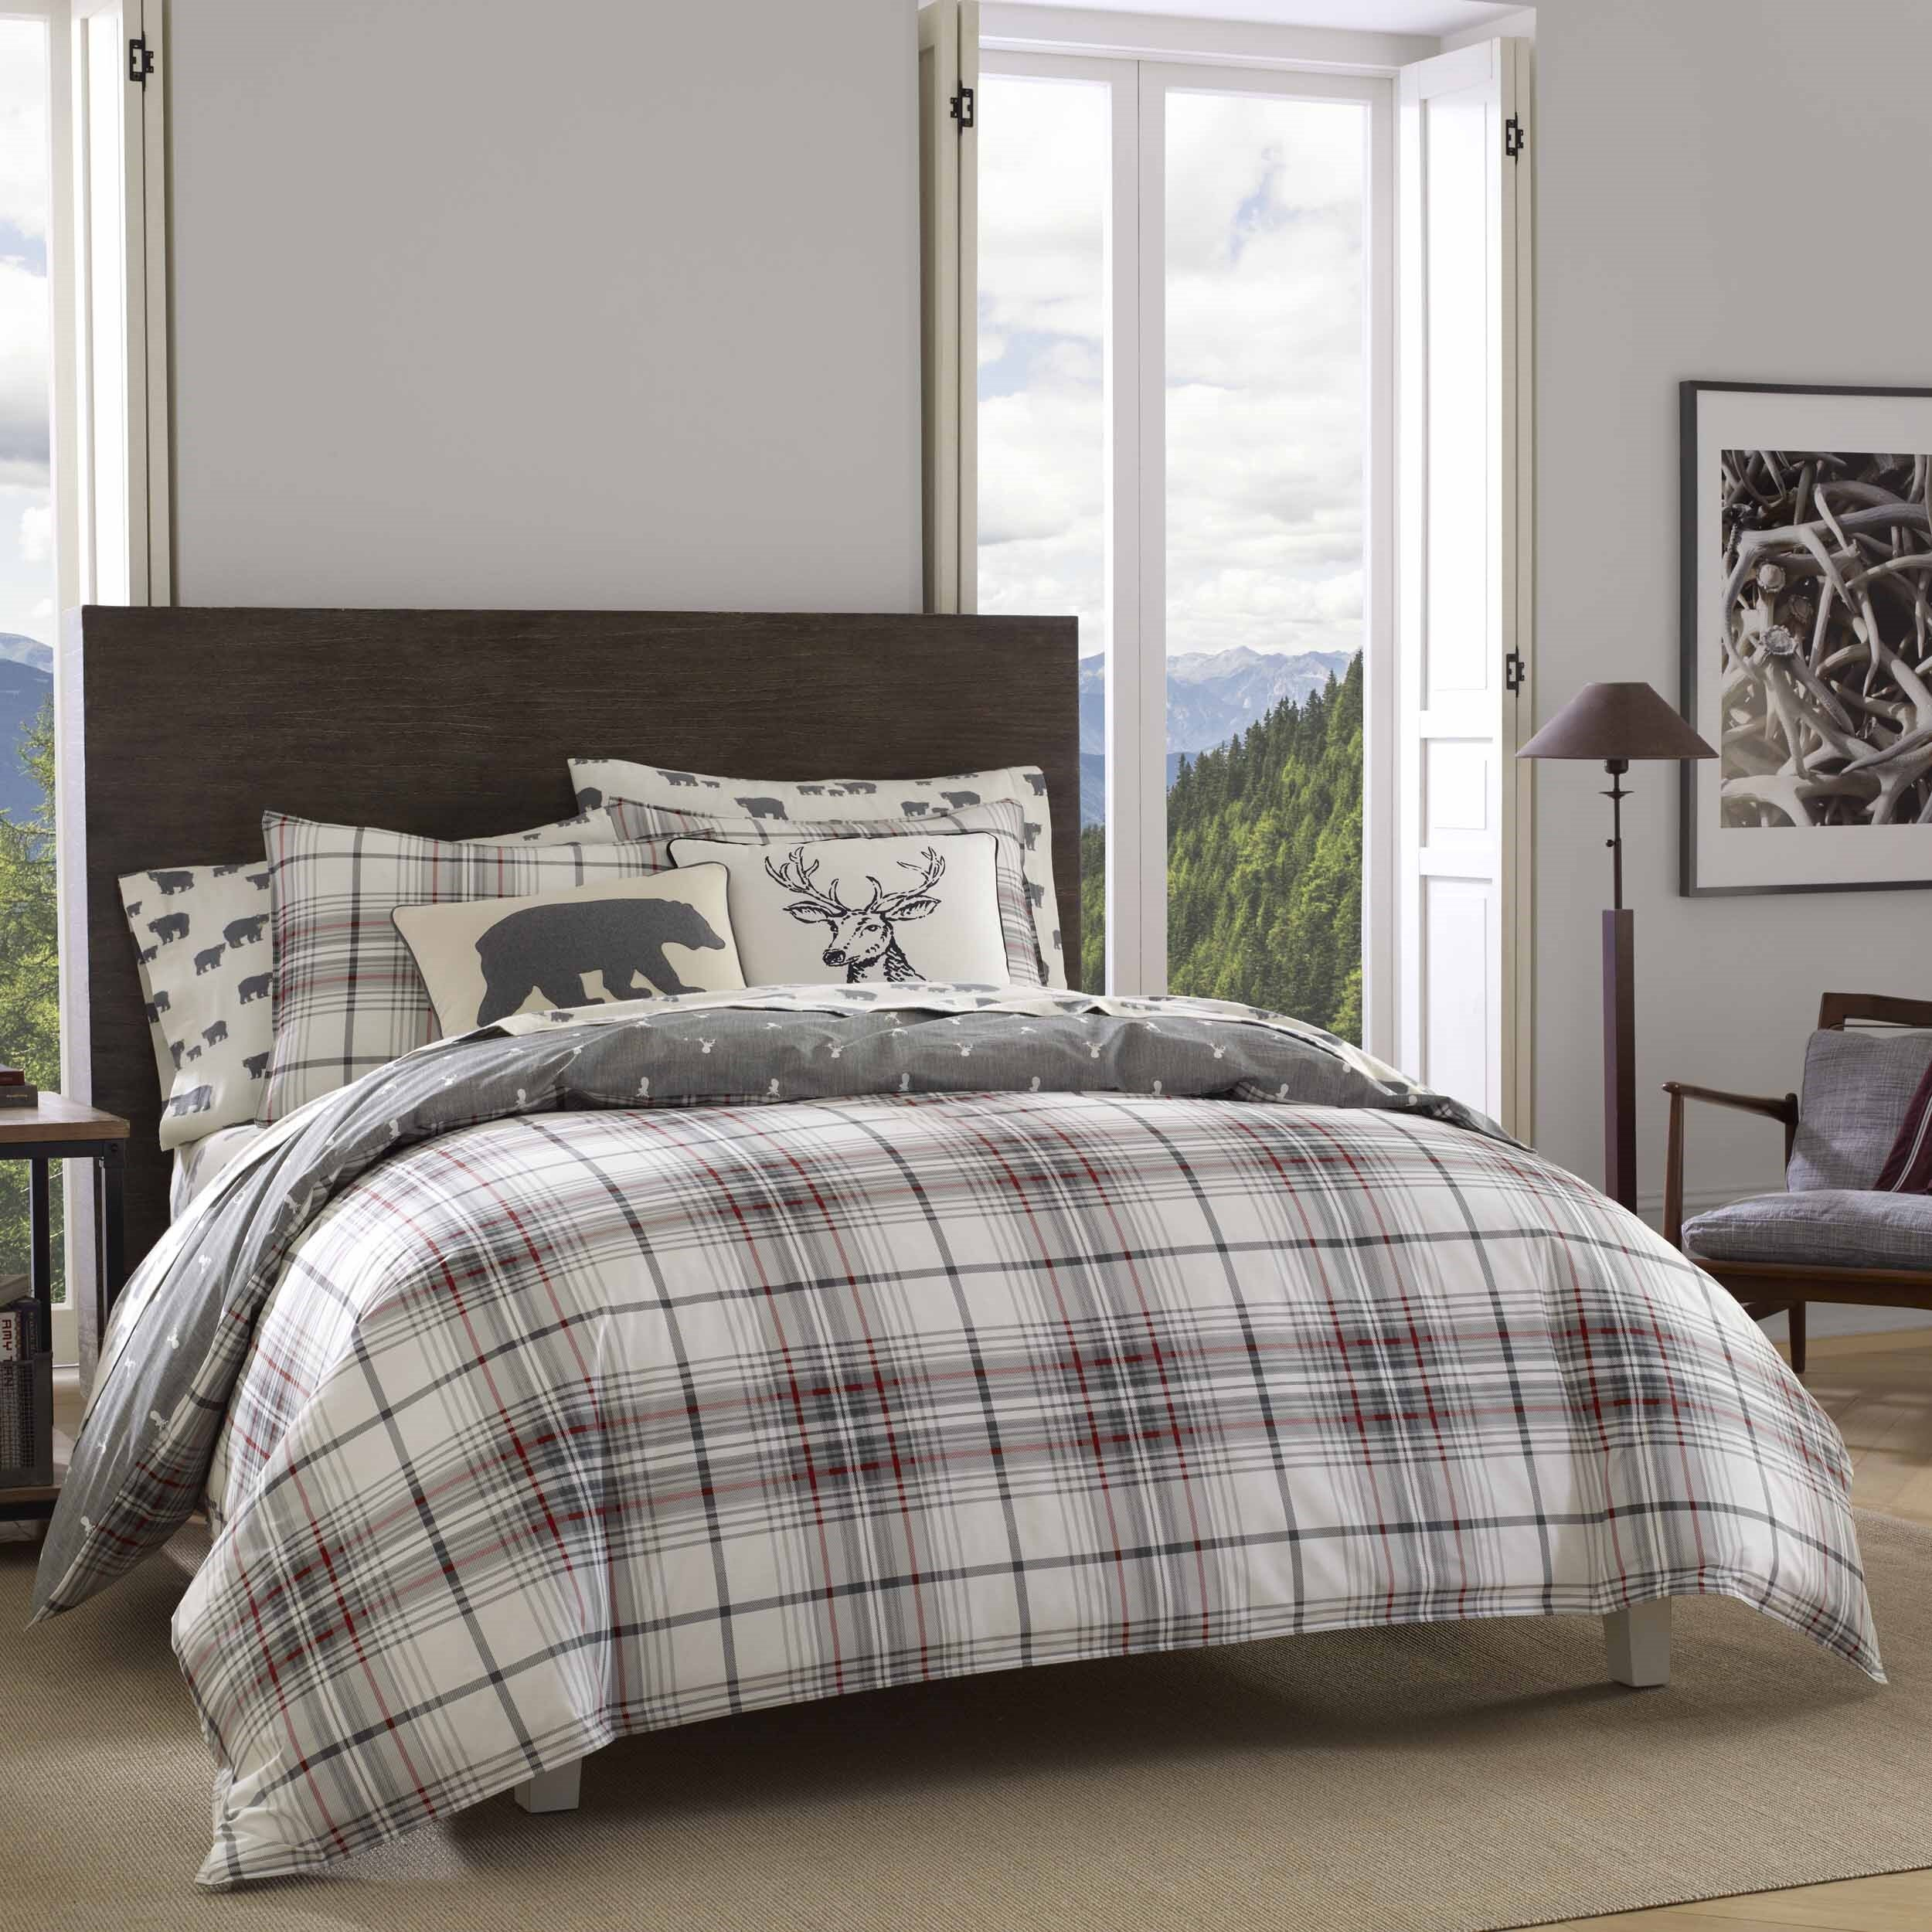 Comforters Comforter Sets Up To 70 Off Through 02 16 Wayfair